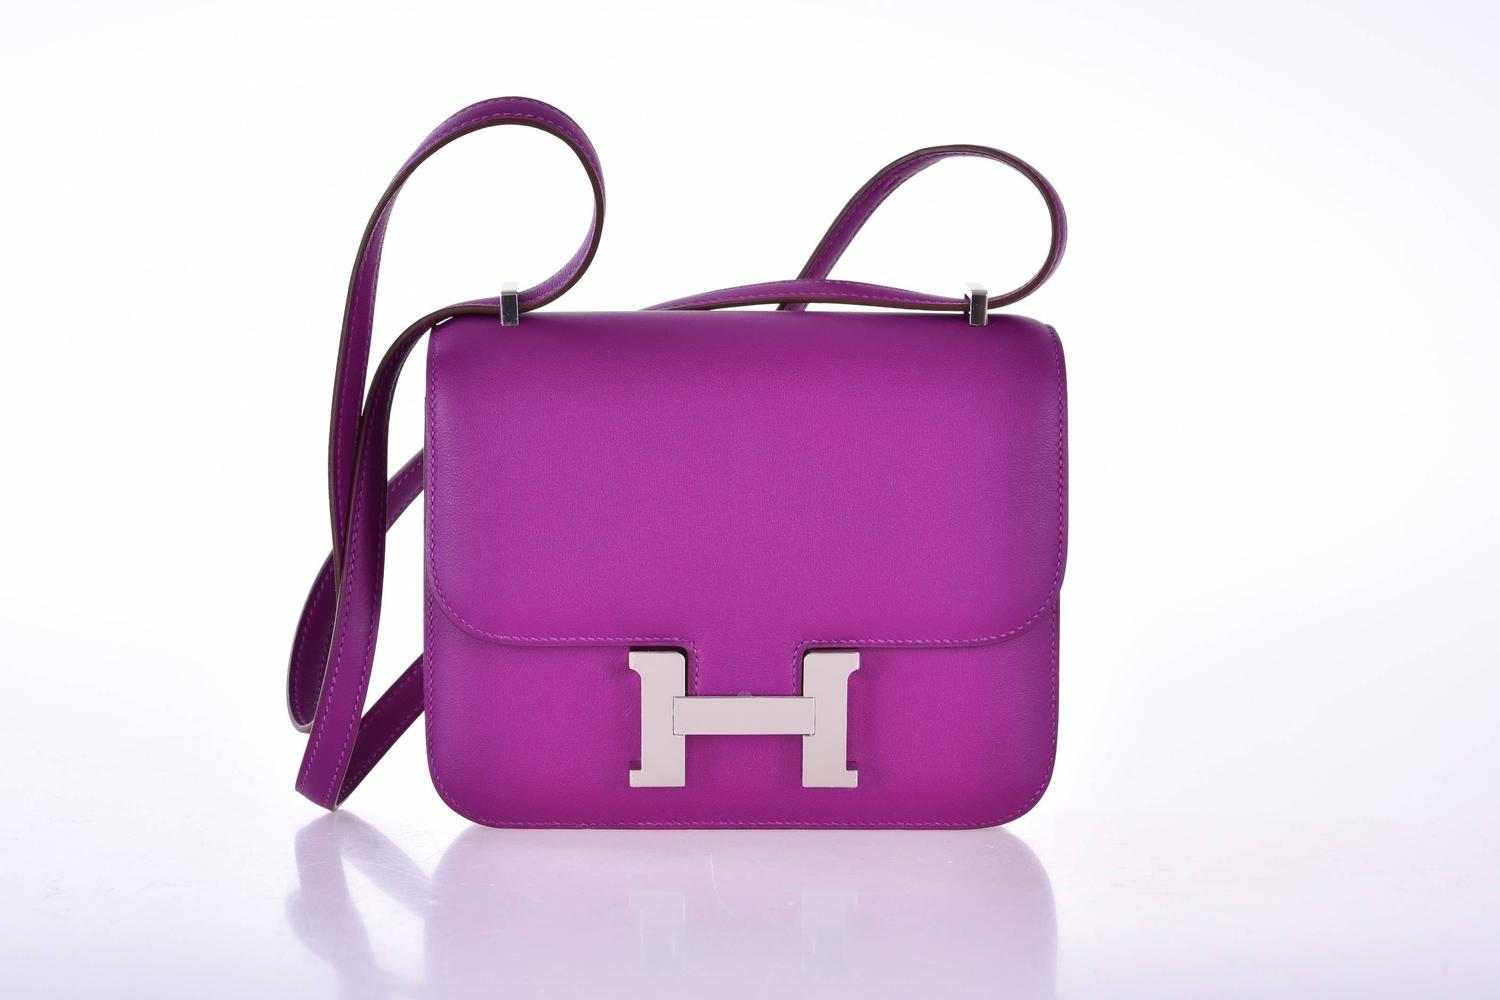 hermes handbags outlet - Hermes Mini Constance 18cm Anemone Swift Palladium Hardware ...